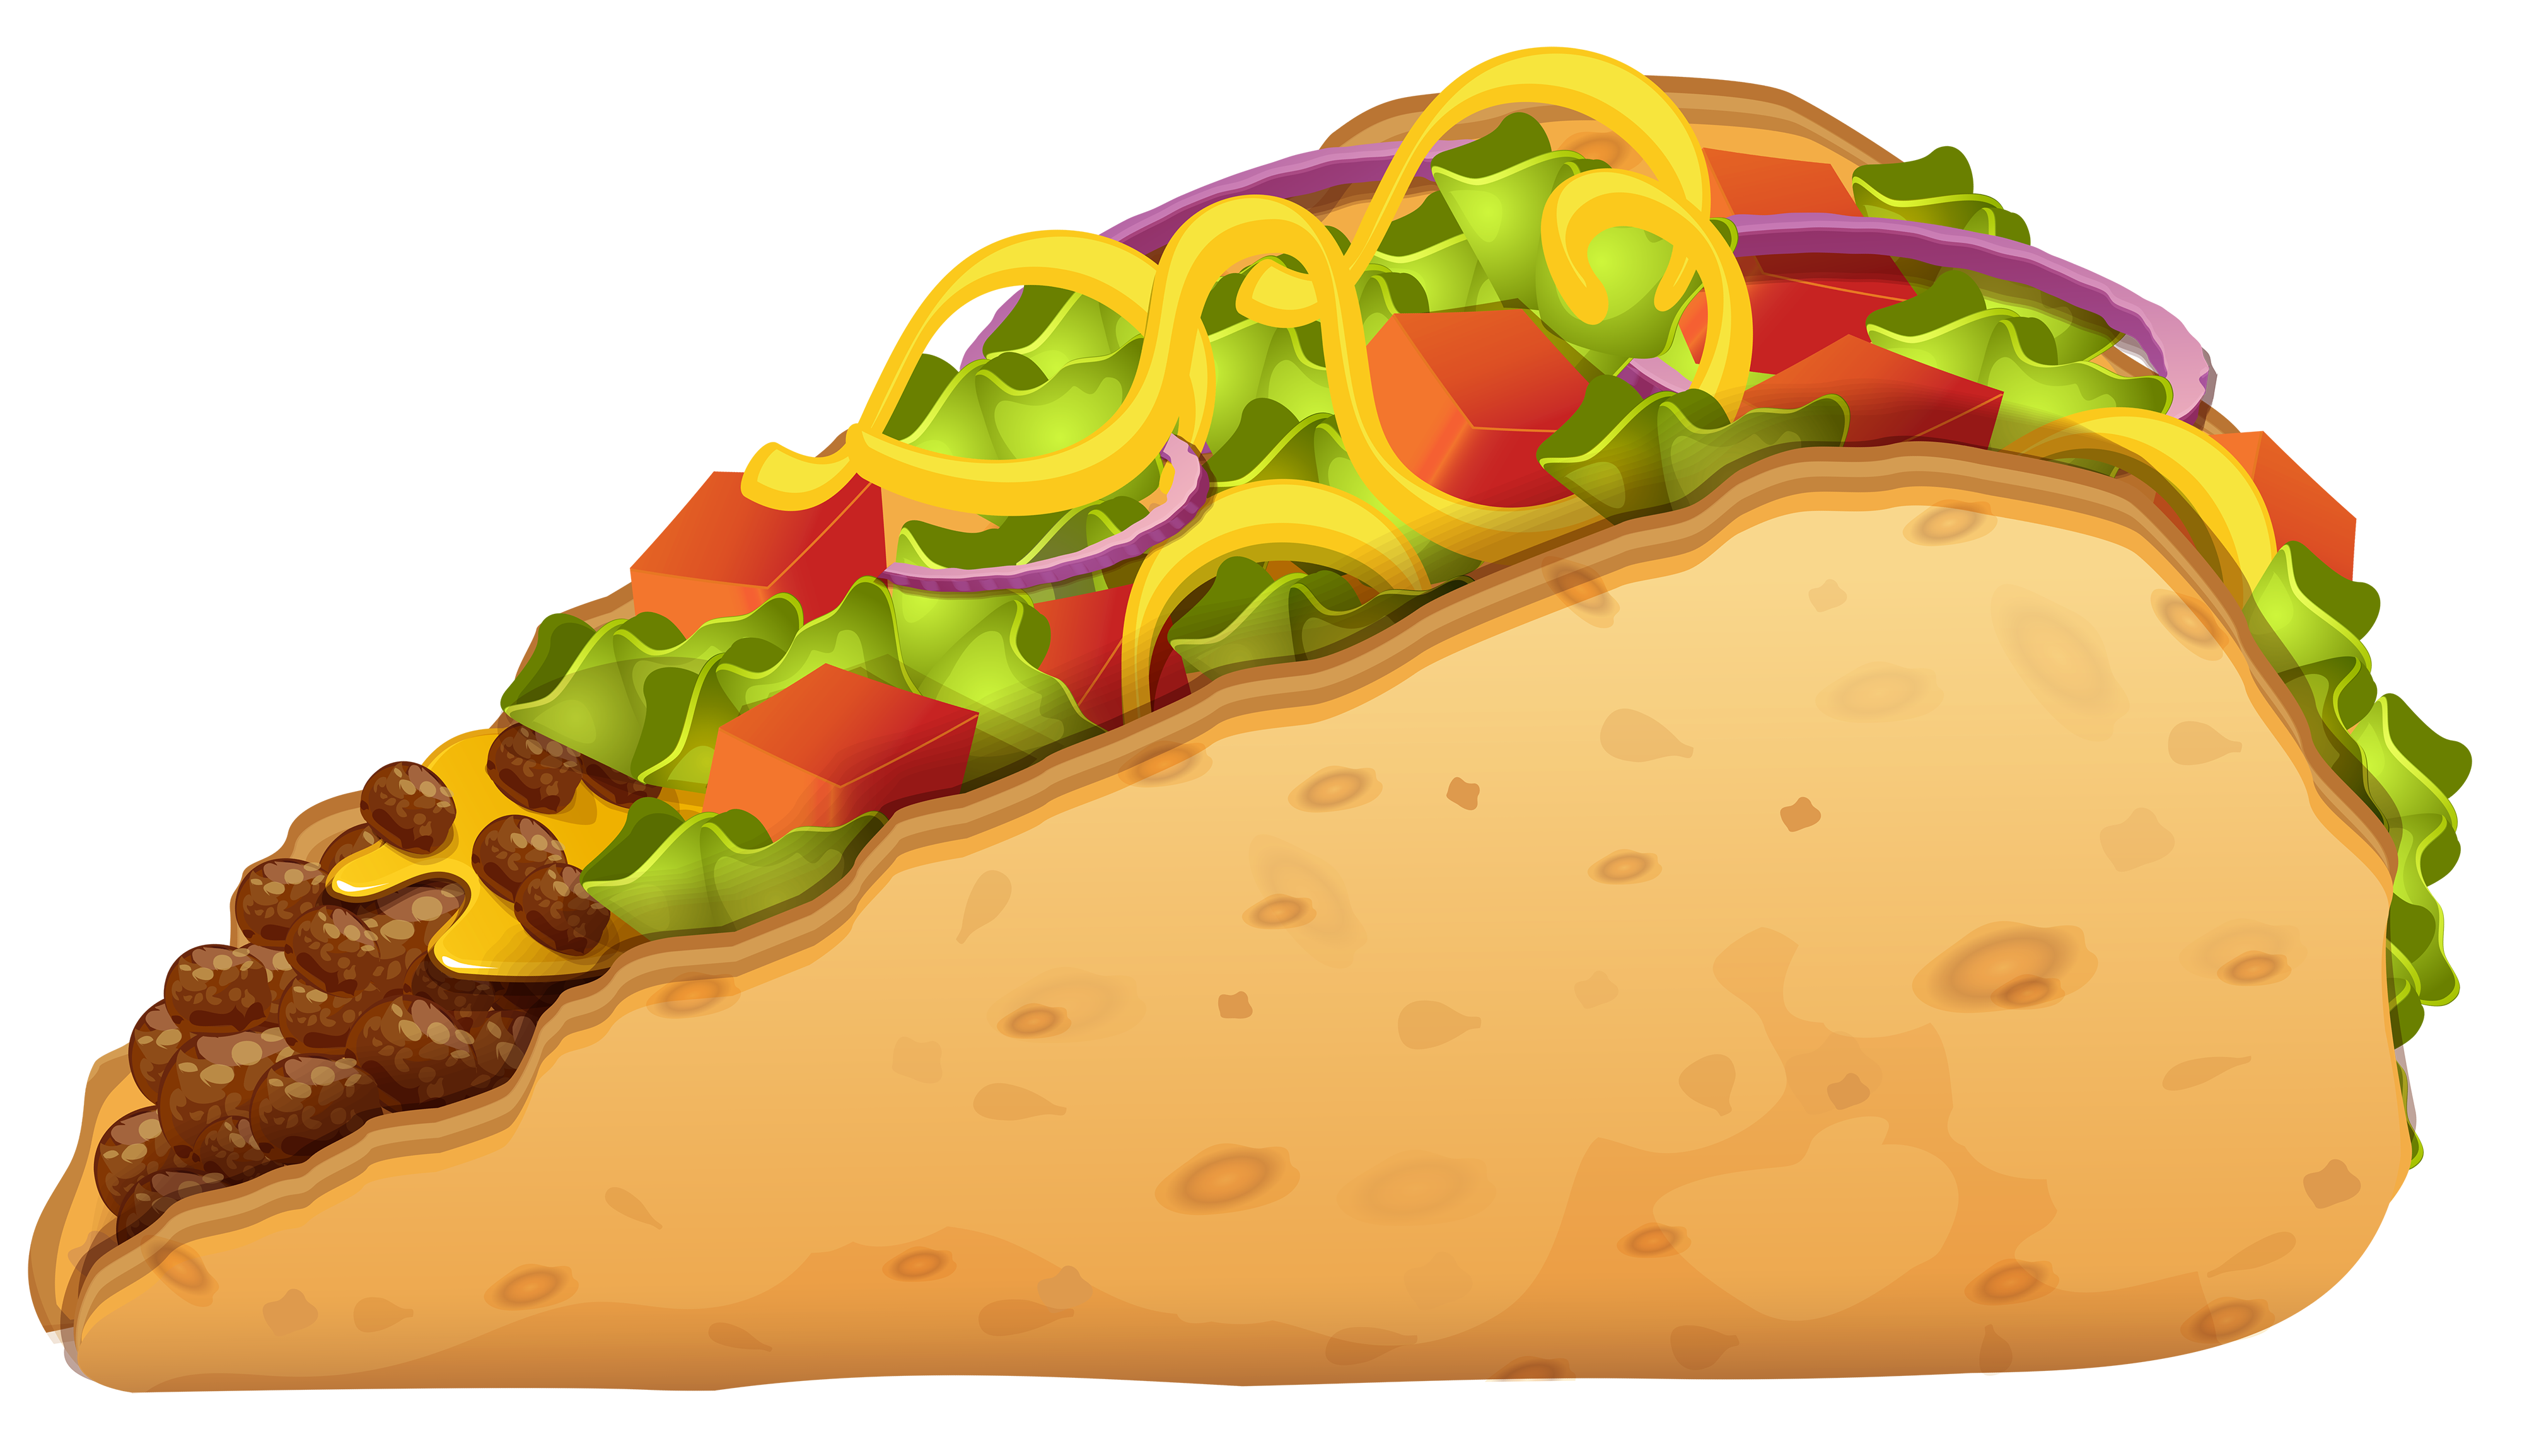 Fruits clipart sandwich. With onion and lettuce